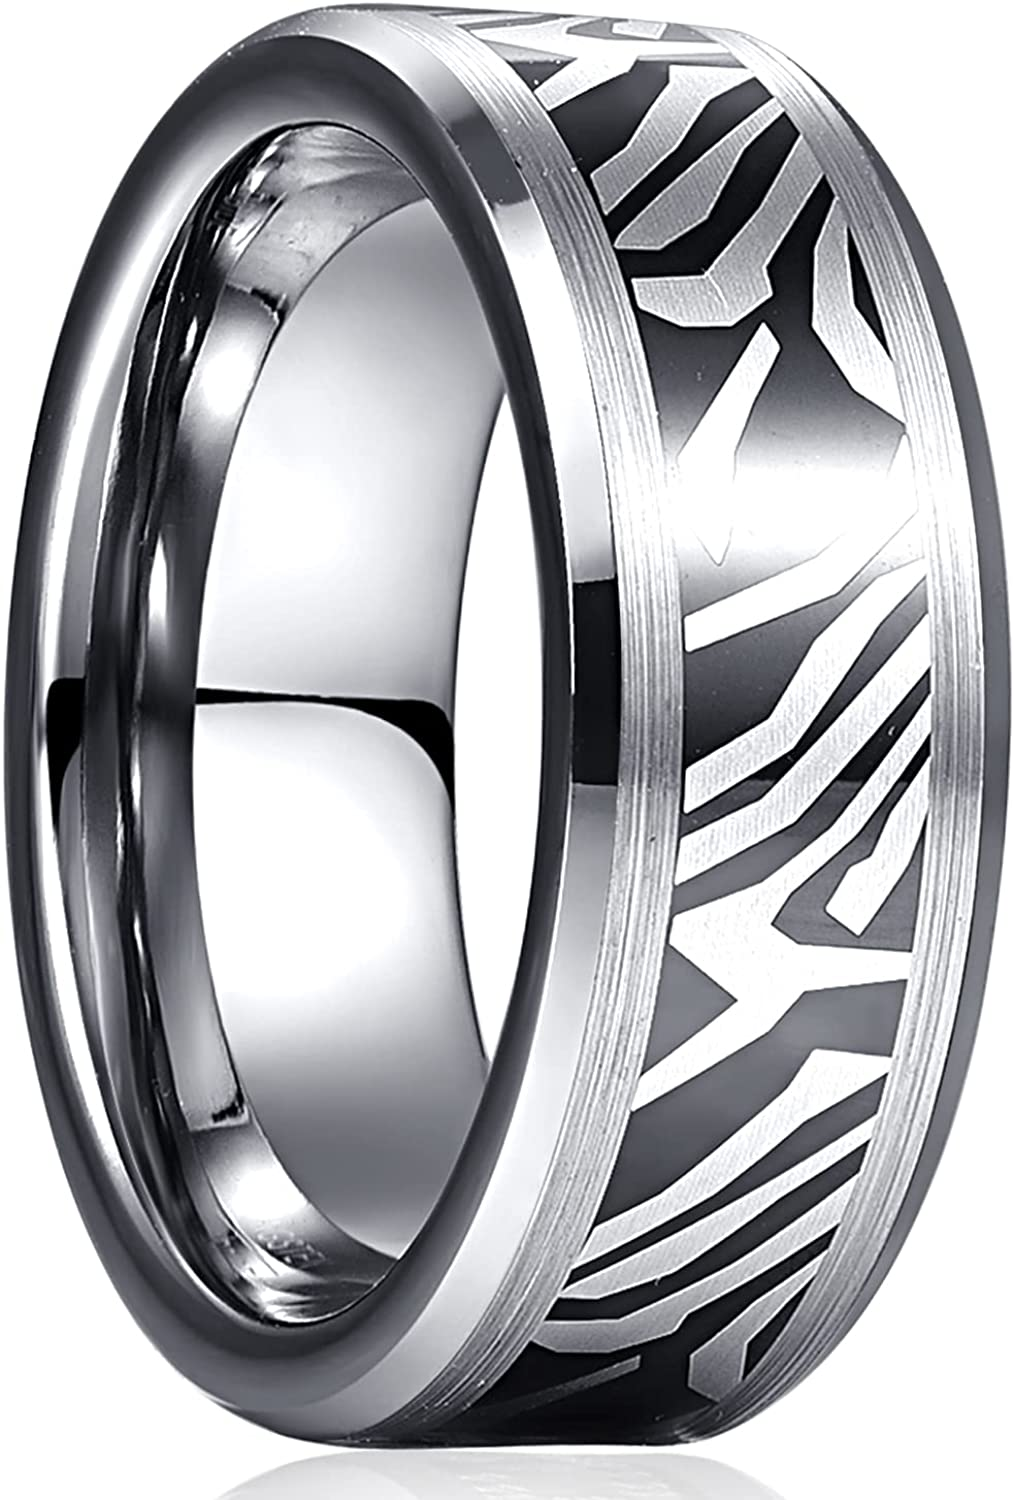 TUNGSTORY Tungsten Carbide Damascus Wedding Ring for Men 8mm Scratch Resistant Brushed Finish Comfort Fit